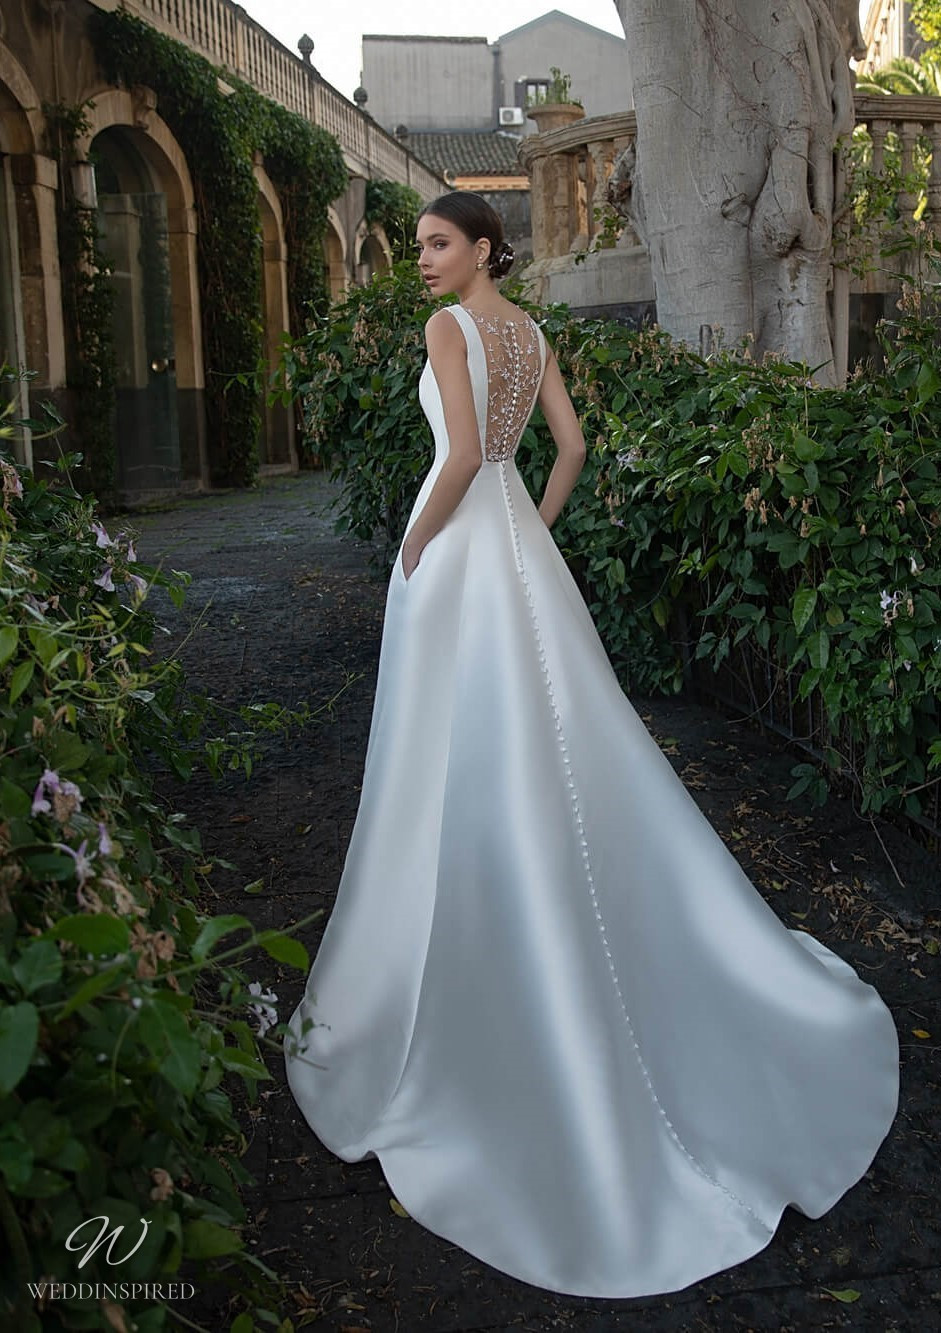 A Naviblue silk satin A-line wedding dress with straps and an illusion back